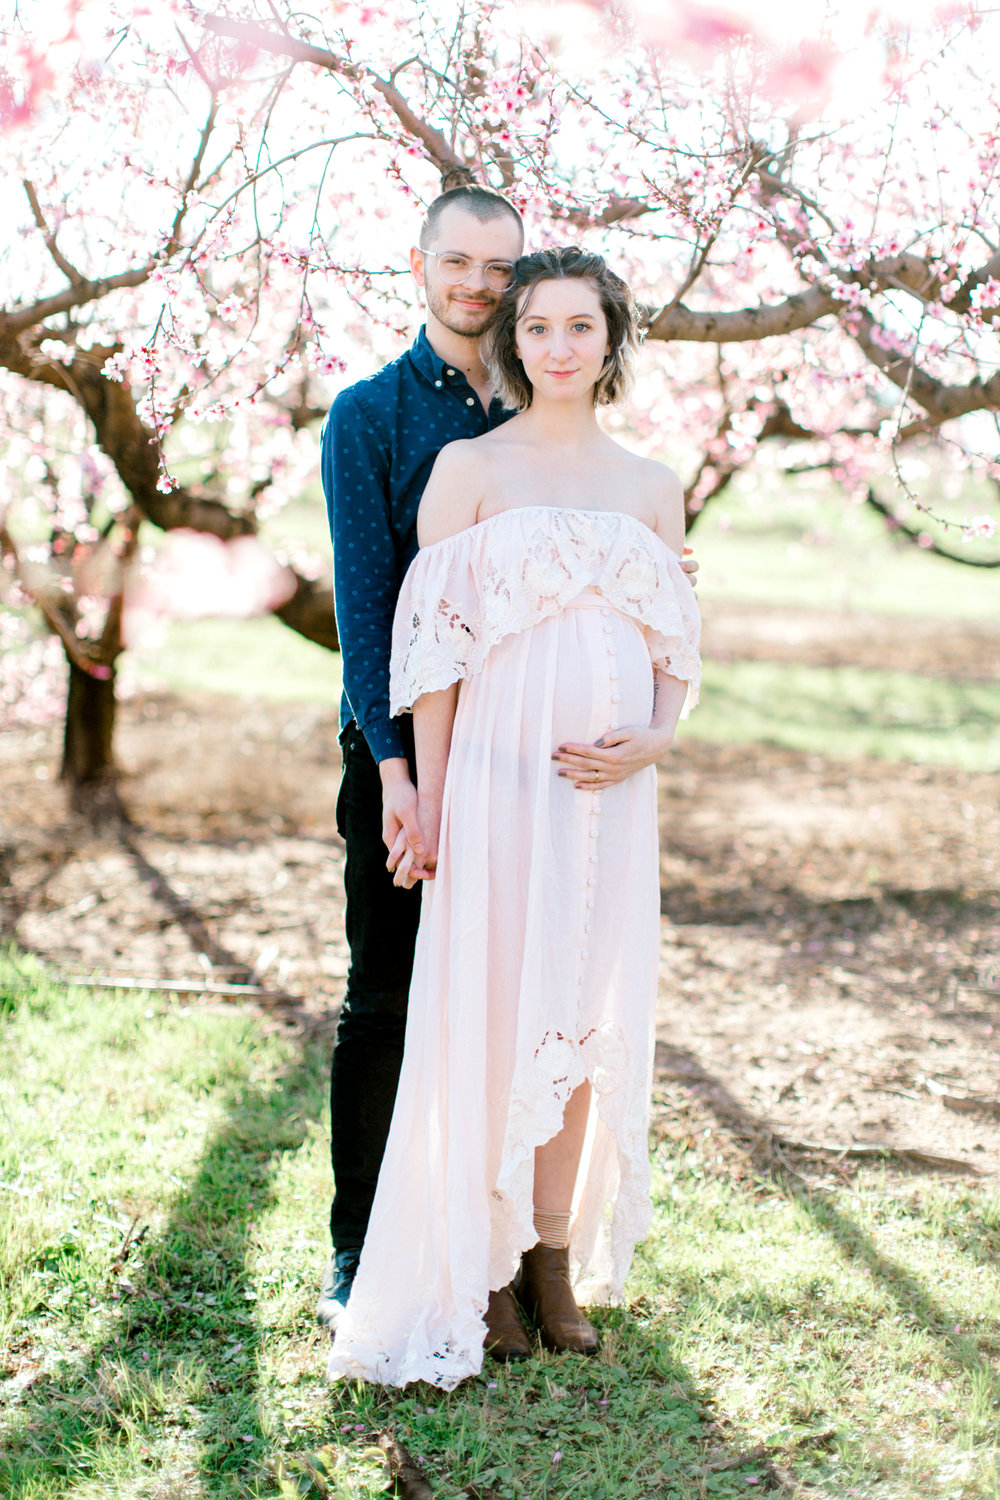 four corners photography peach blossom mini sessions peach blossom maternity session (6 of 25).jpg